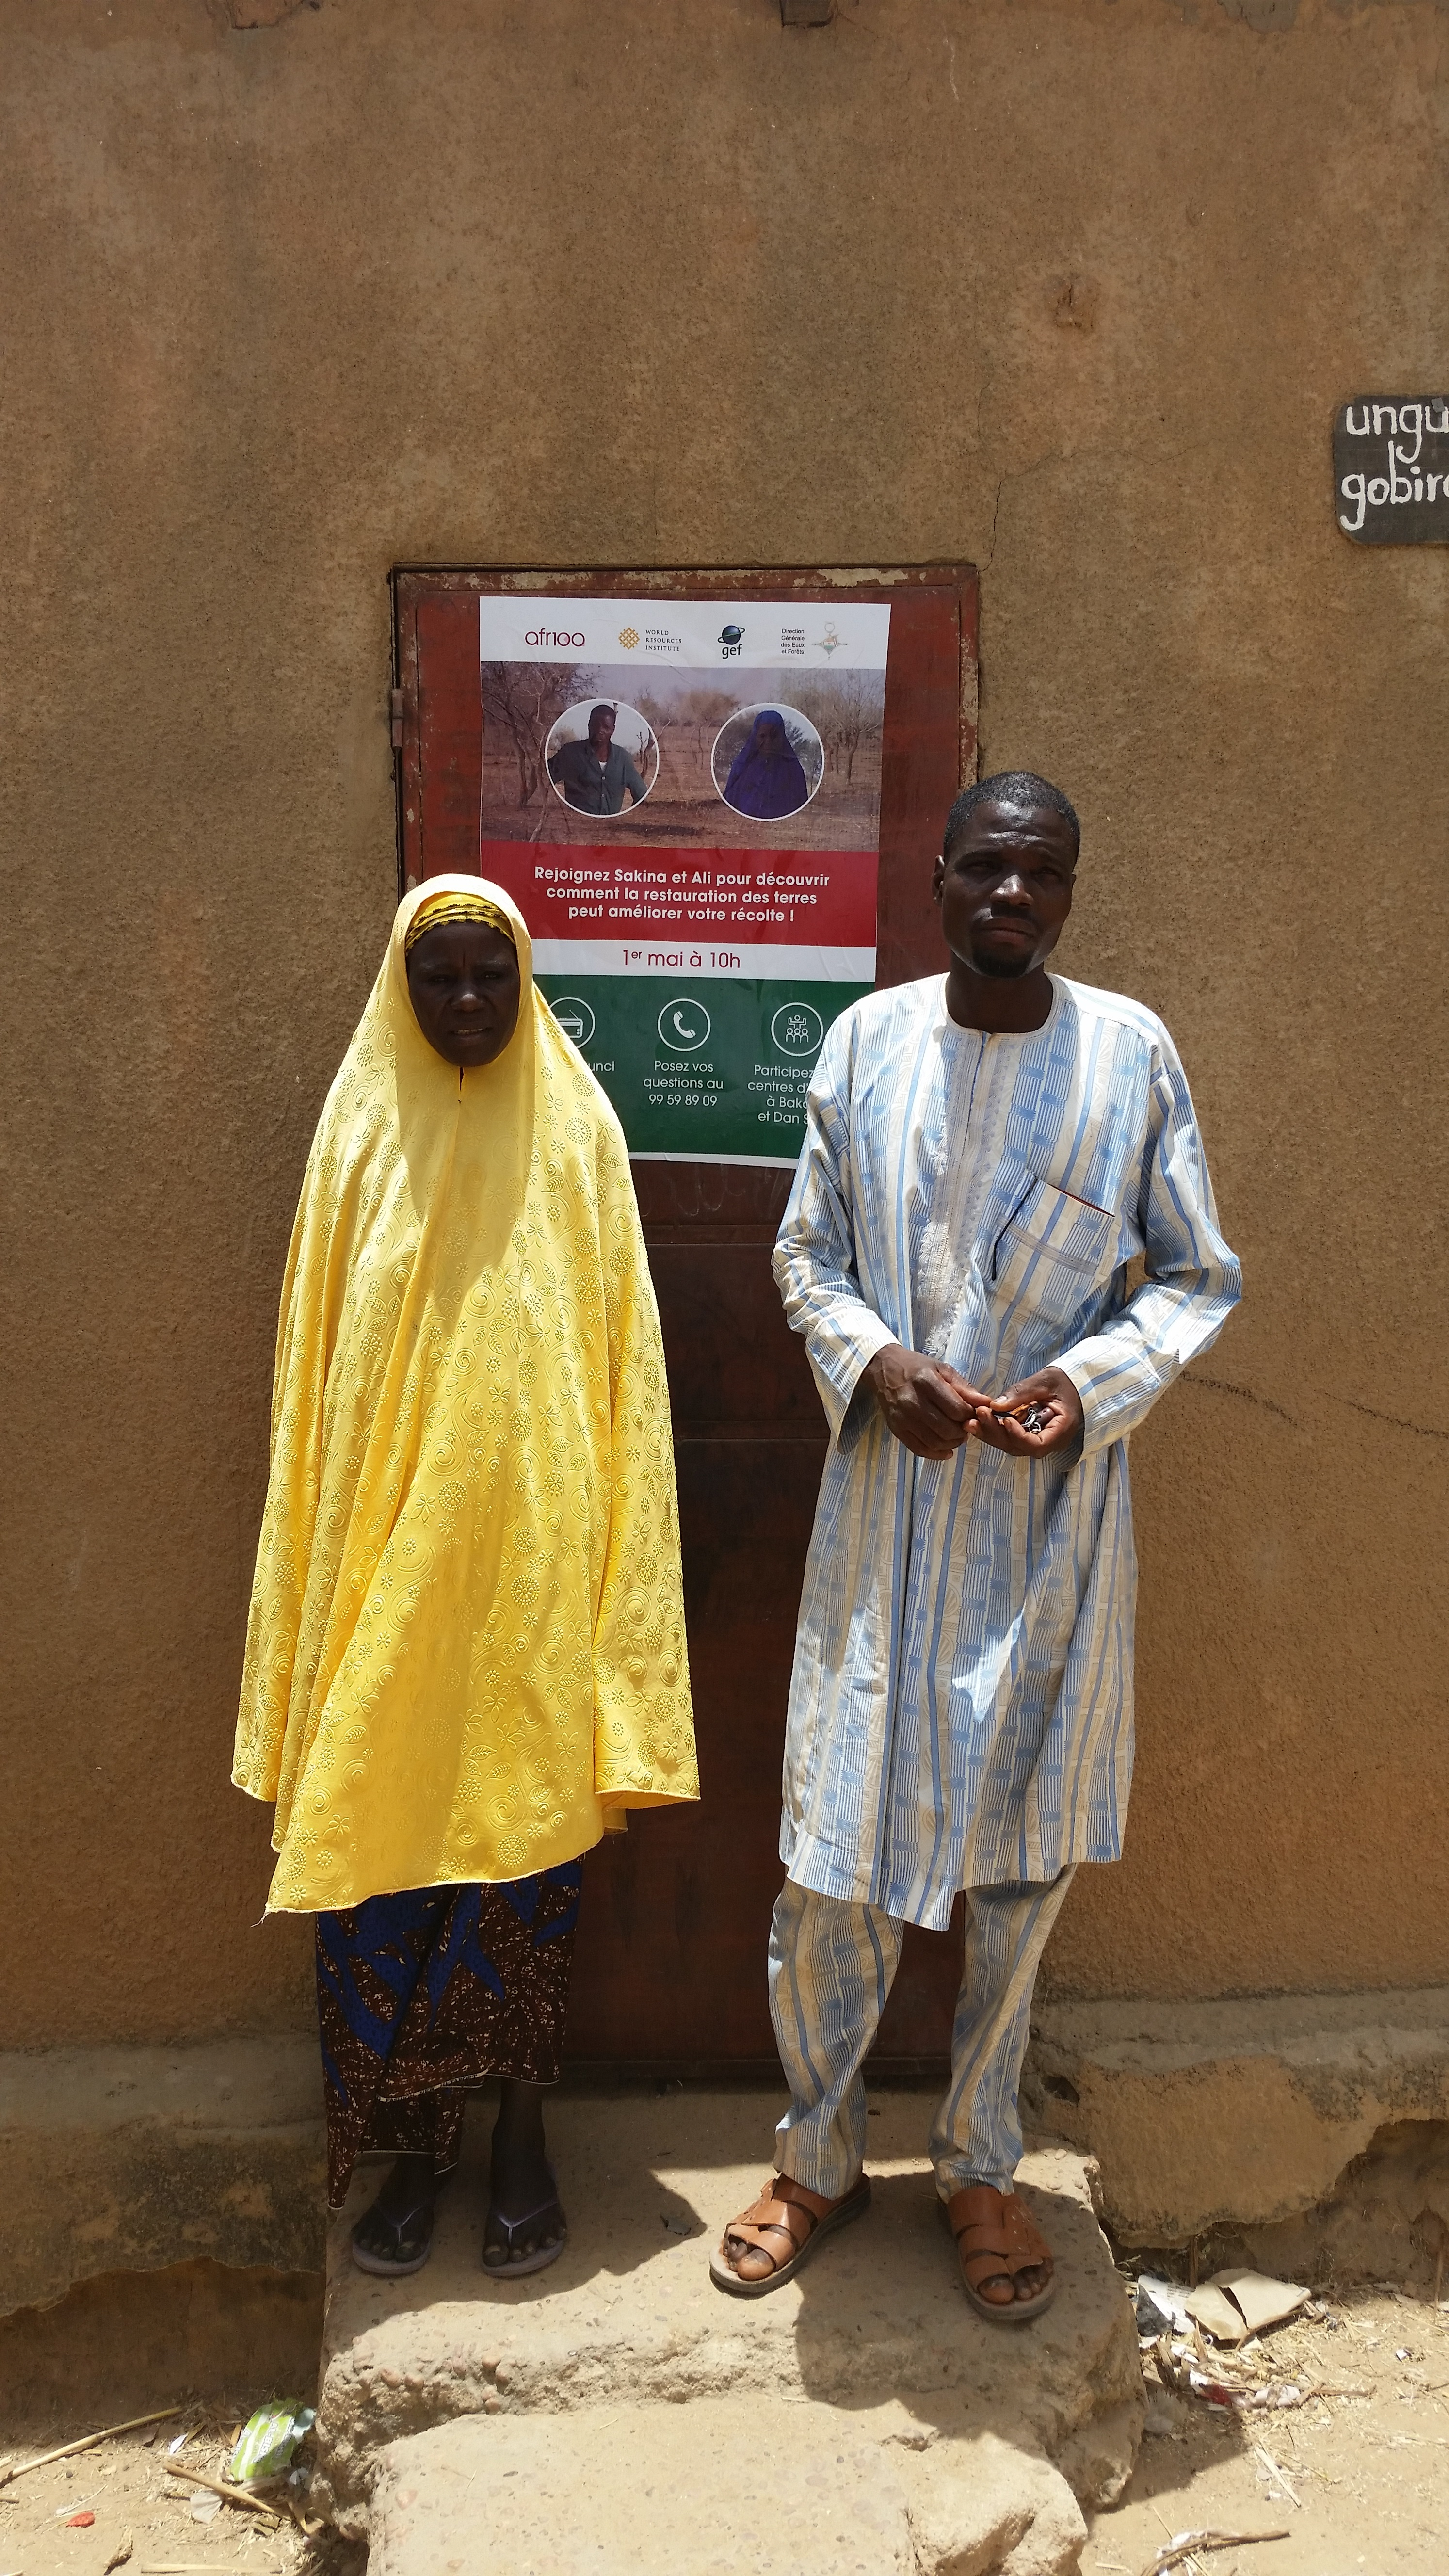 <p>Mati and Malam with the poster advertising their radio show. Photo: Salima Mahamoudou</p>